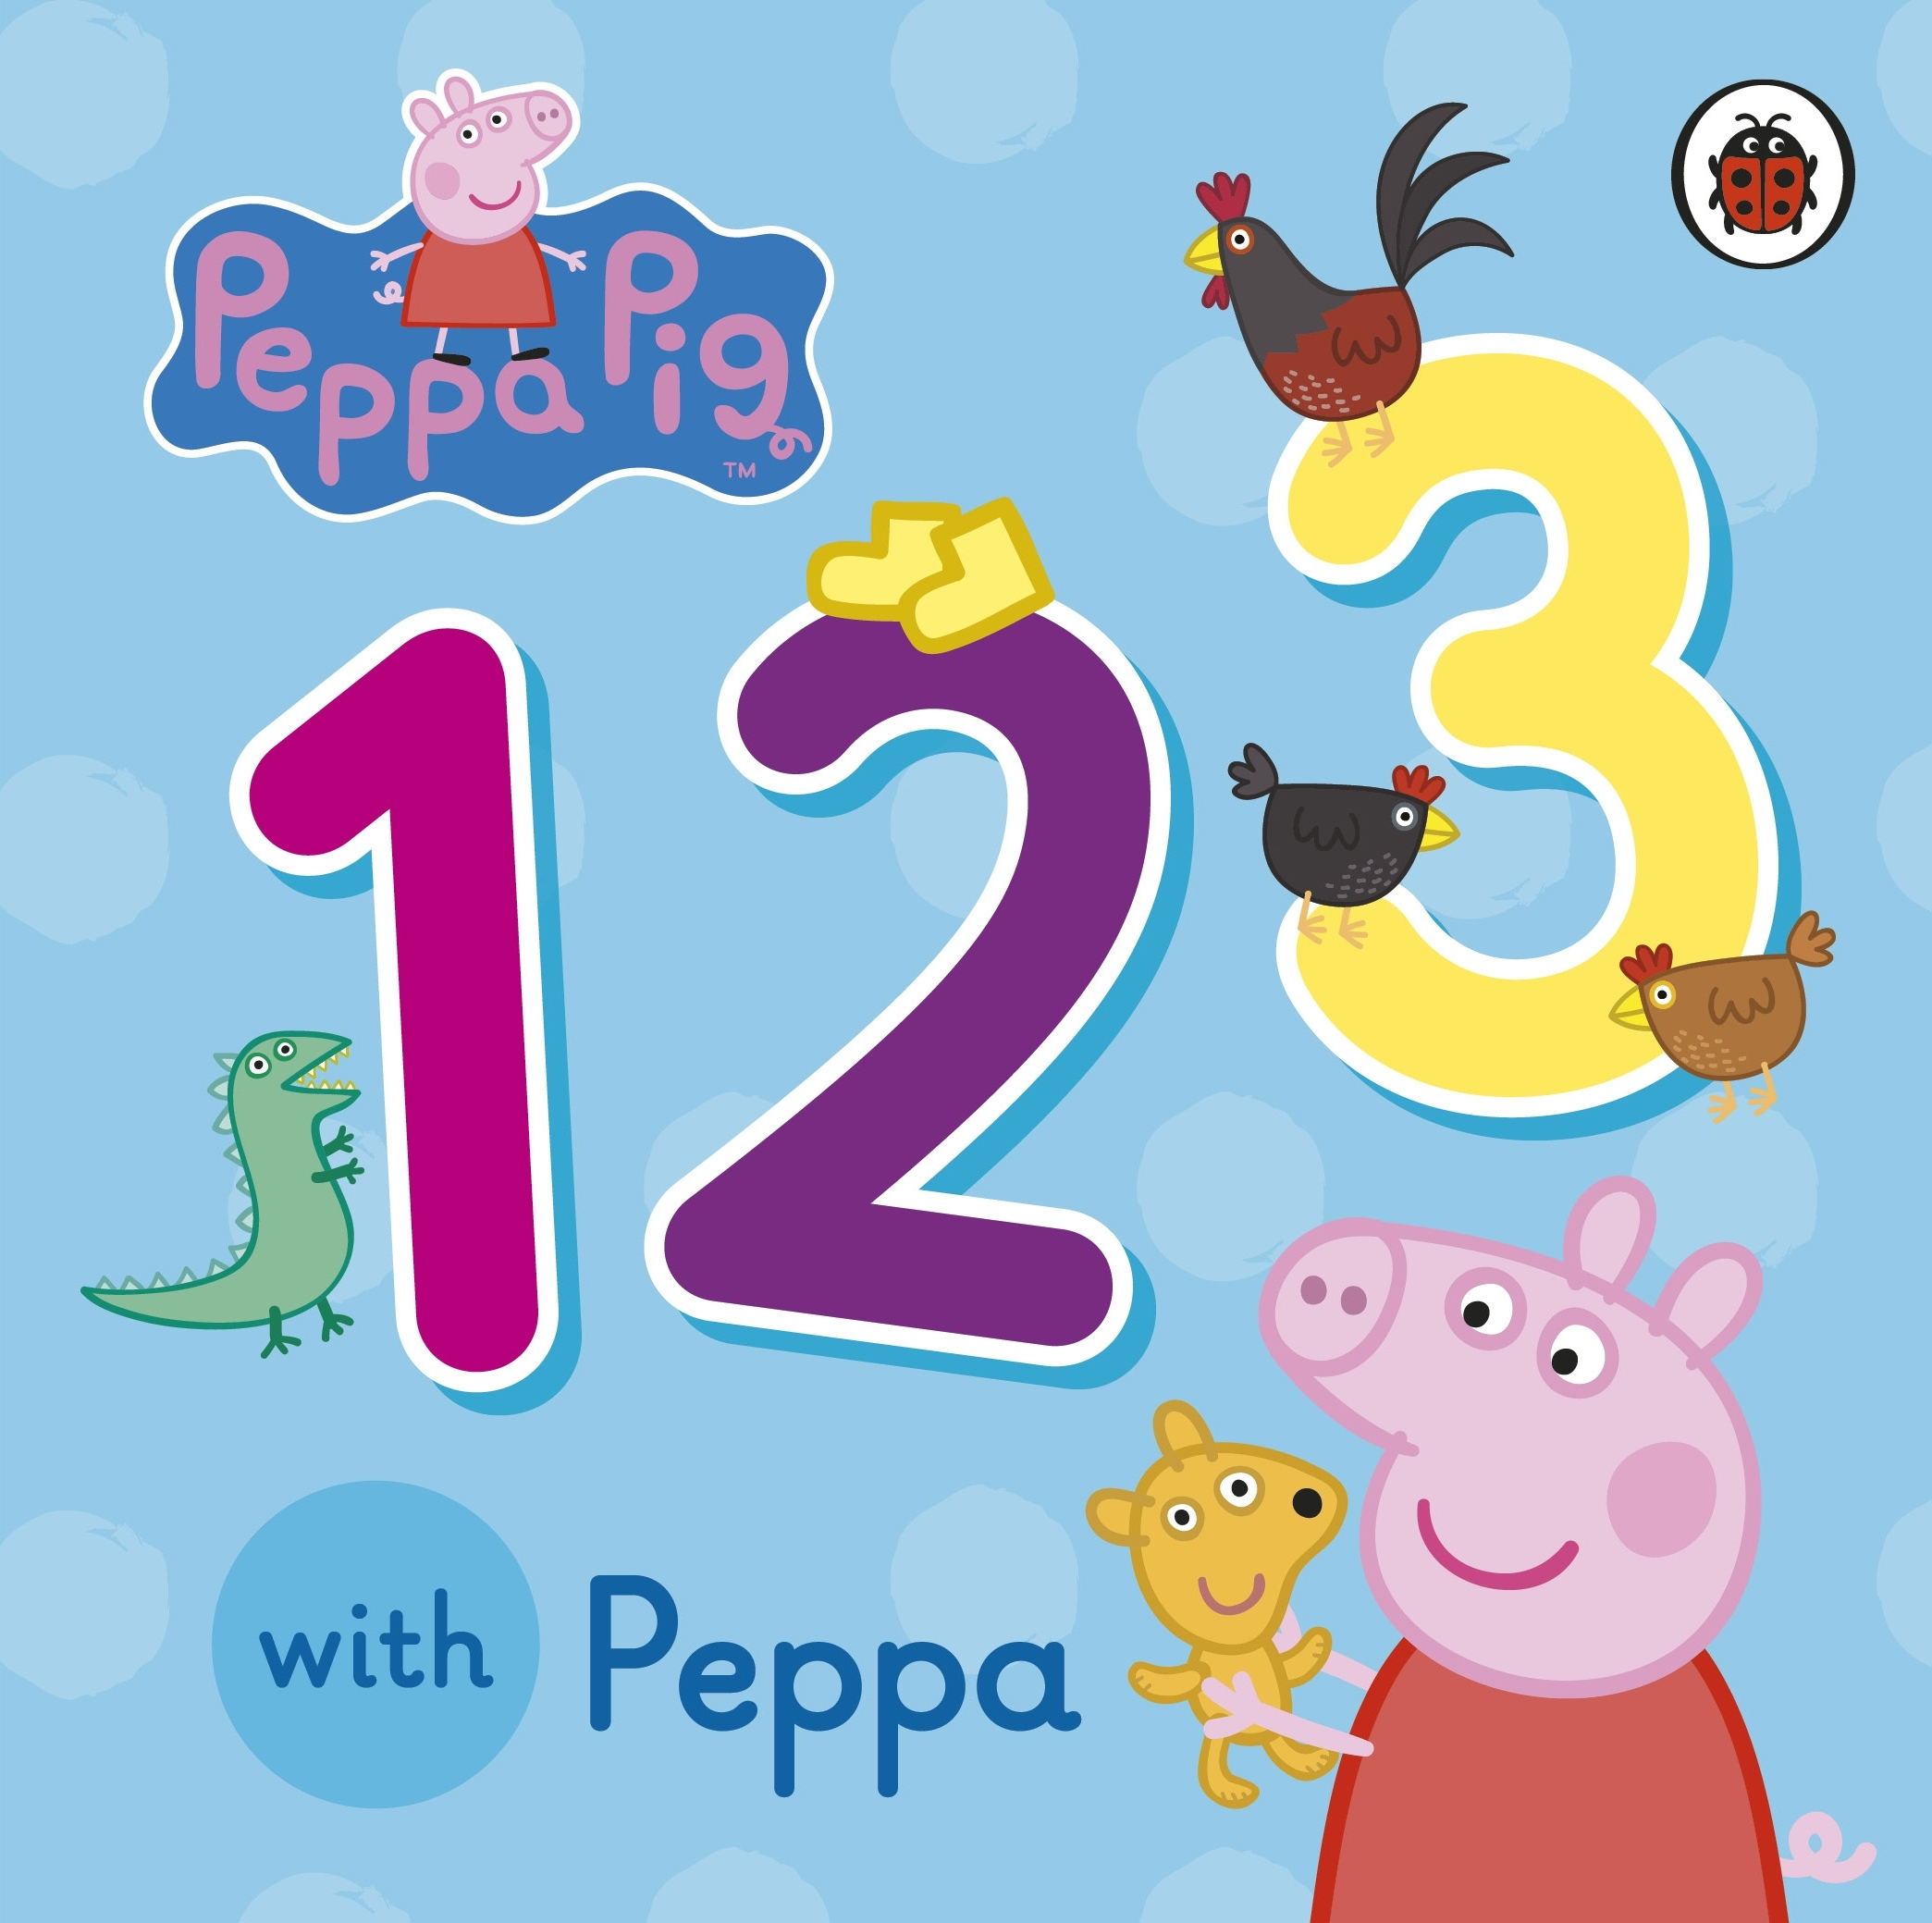 Picture of Peppa Pig: 123 with Peppa